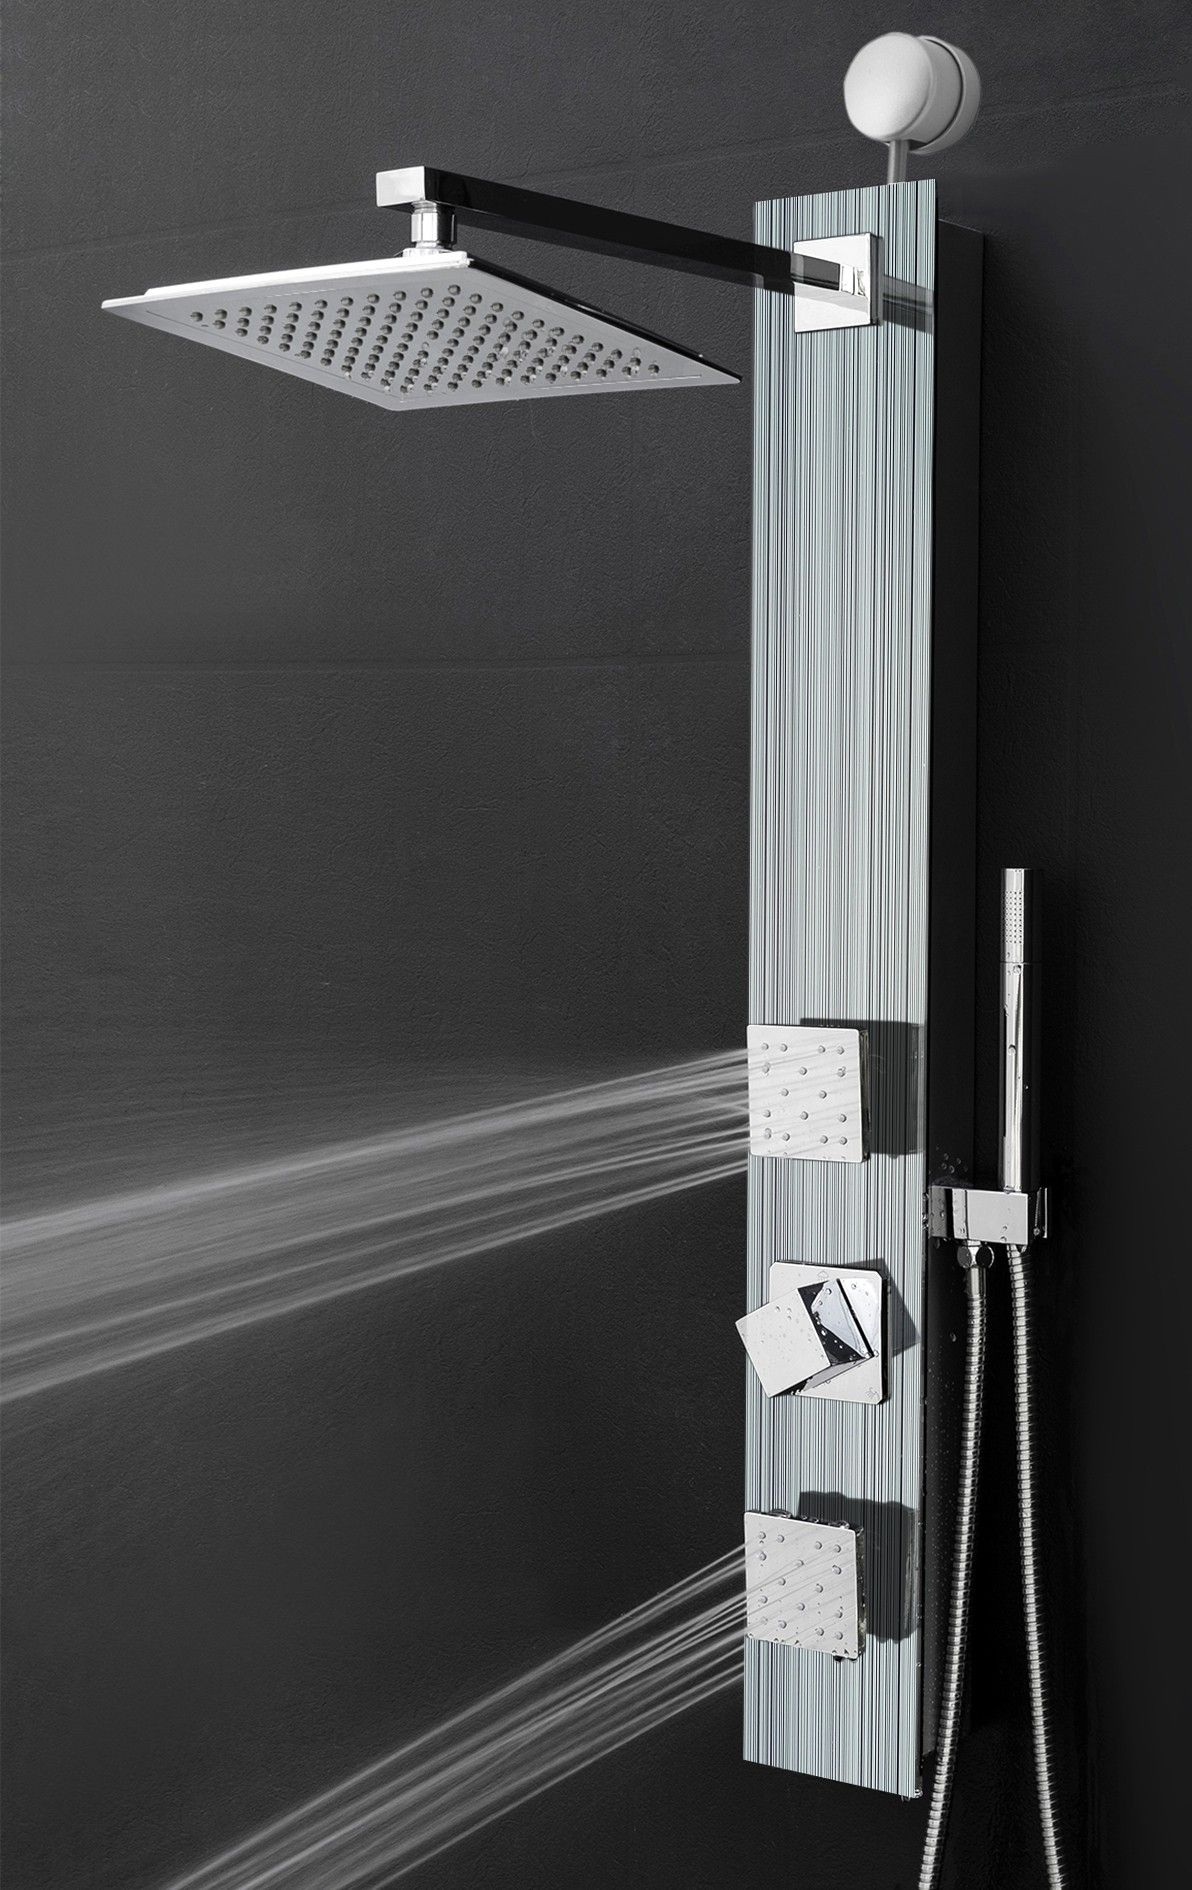 Akdy Sp0060 35 In 2 Jet Easy Connect Shower Panel System In